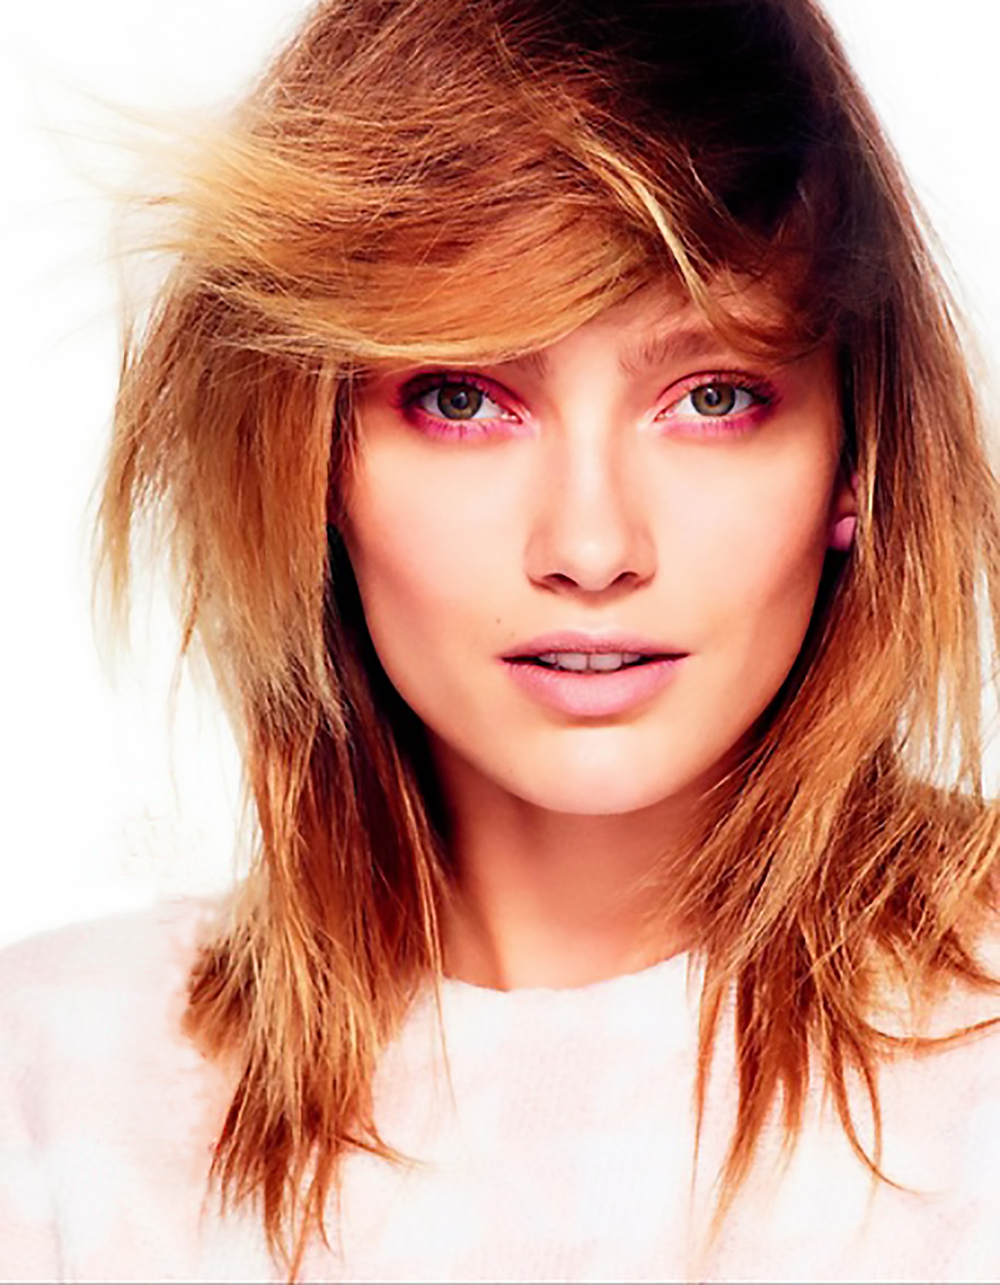 visual optimism elle france March 2014_4 beauty 1500.jpg